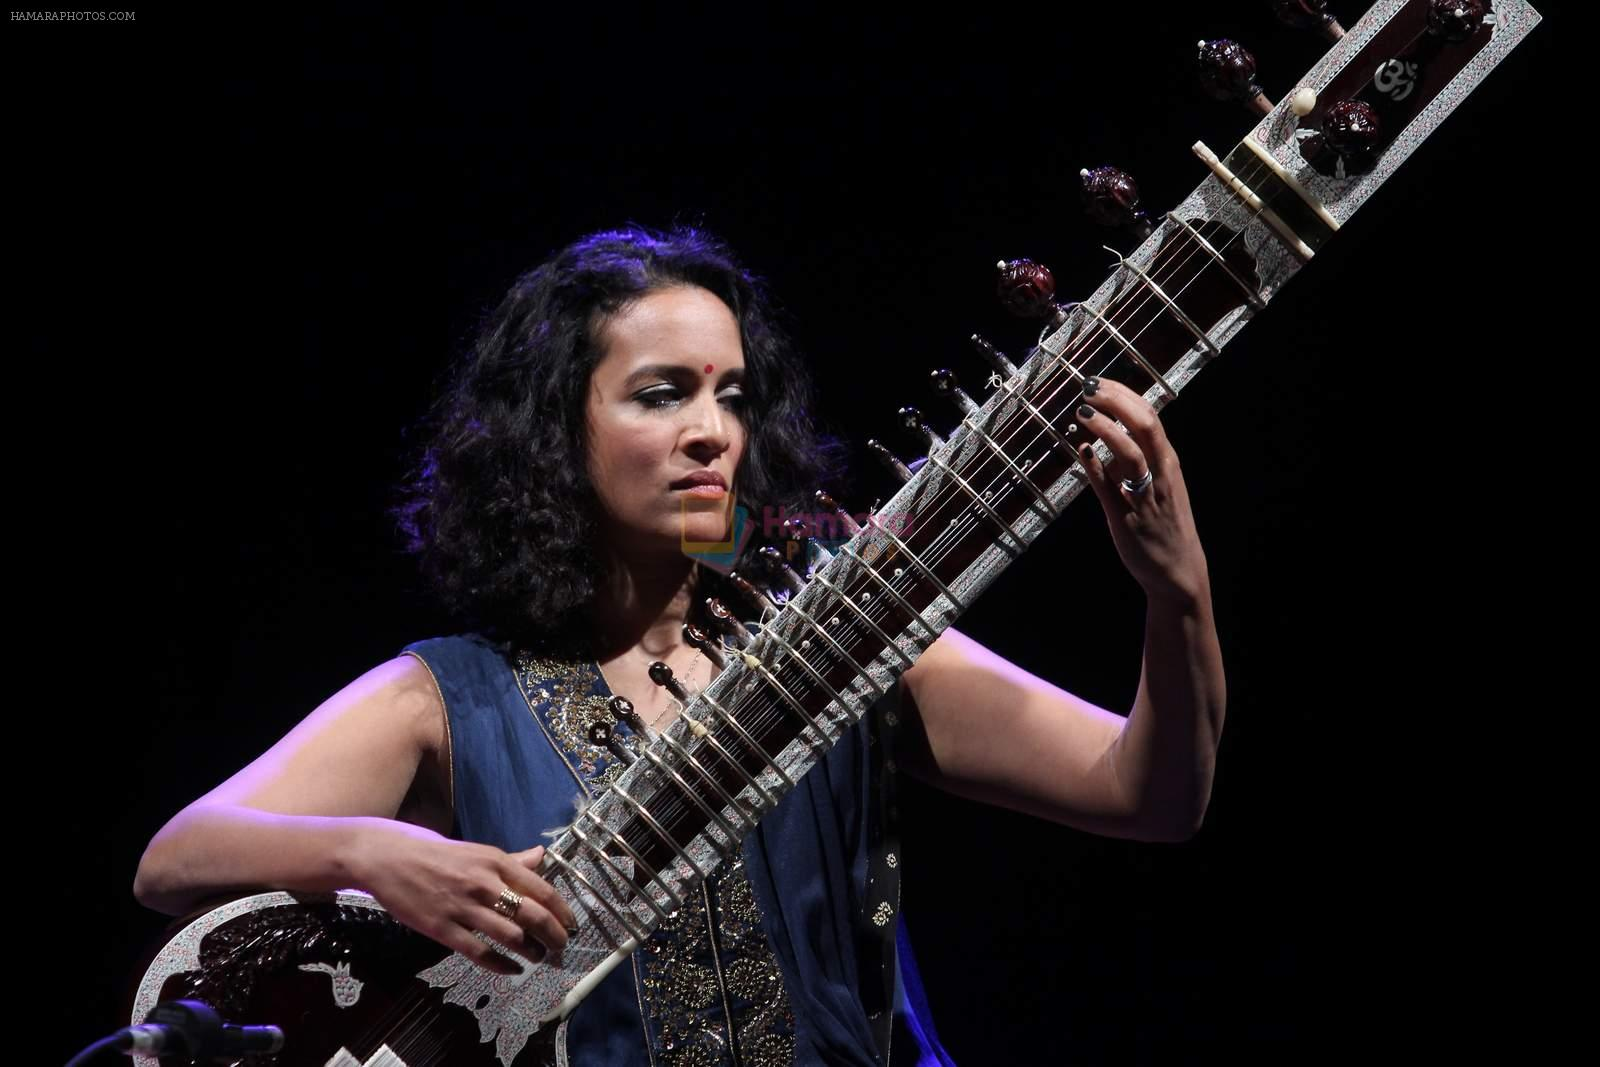 Anoushka shankar concert on 13th Dec 2015